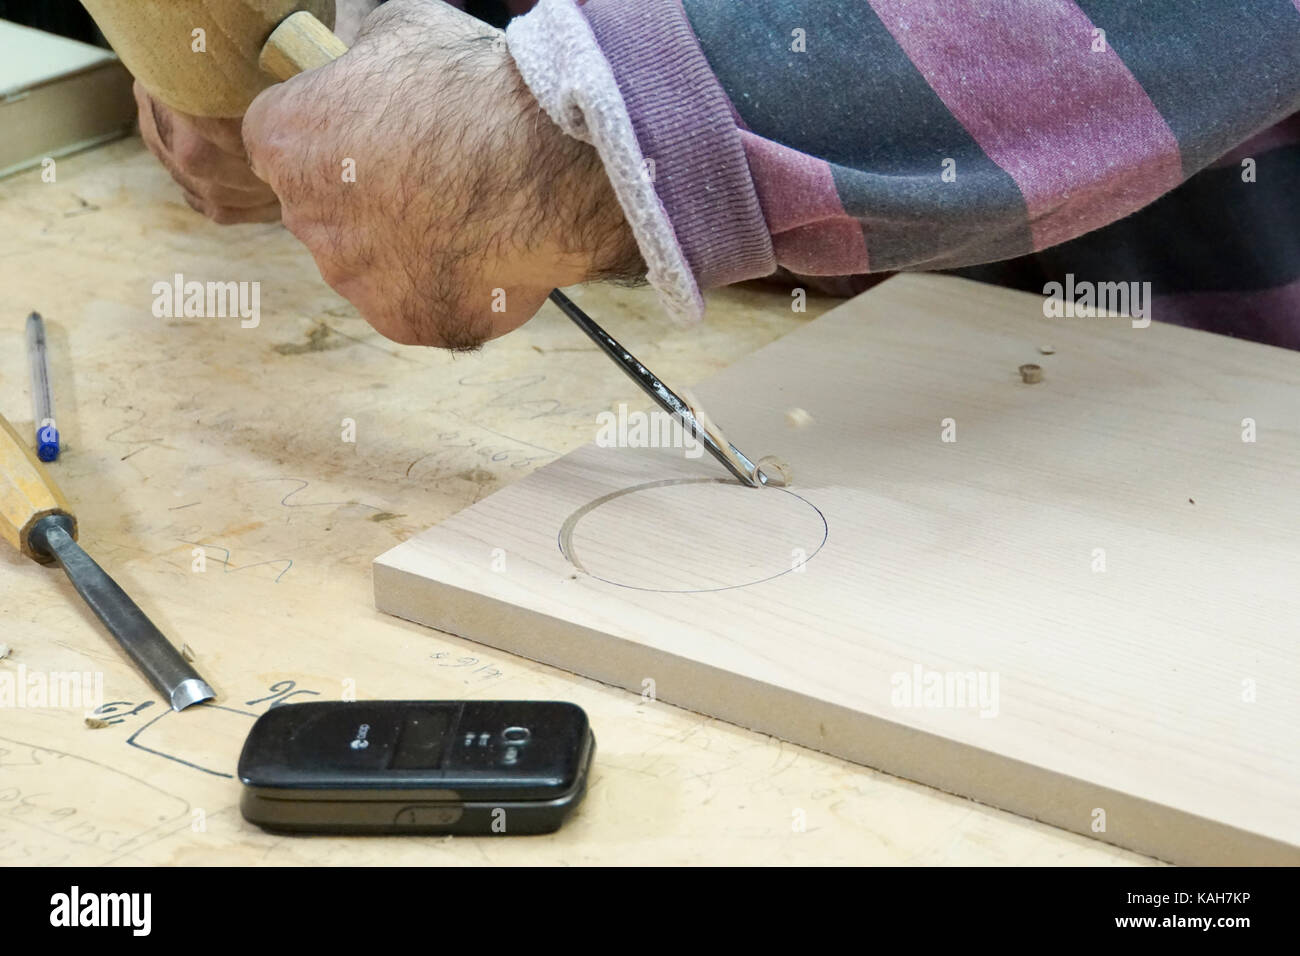 A man engraving a block of wood with a mallet and chisel - Stock Image